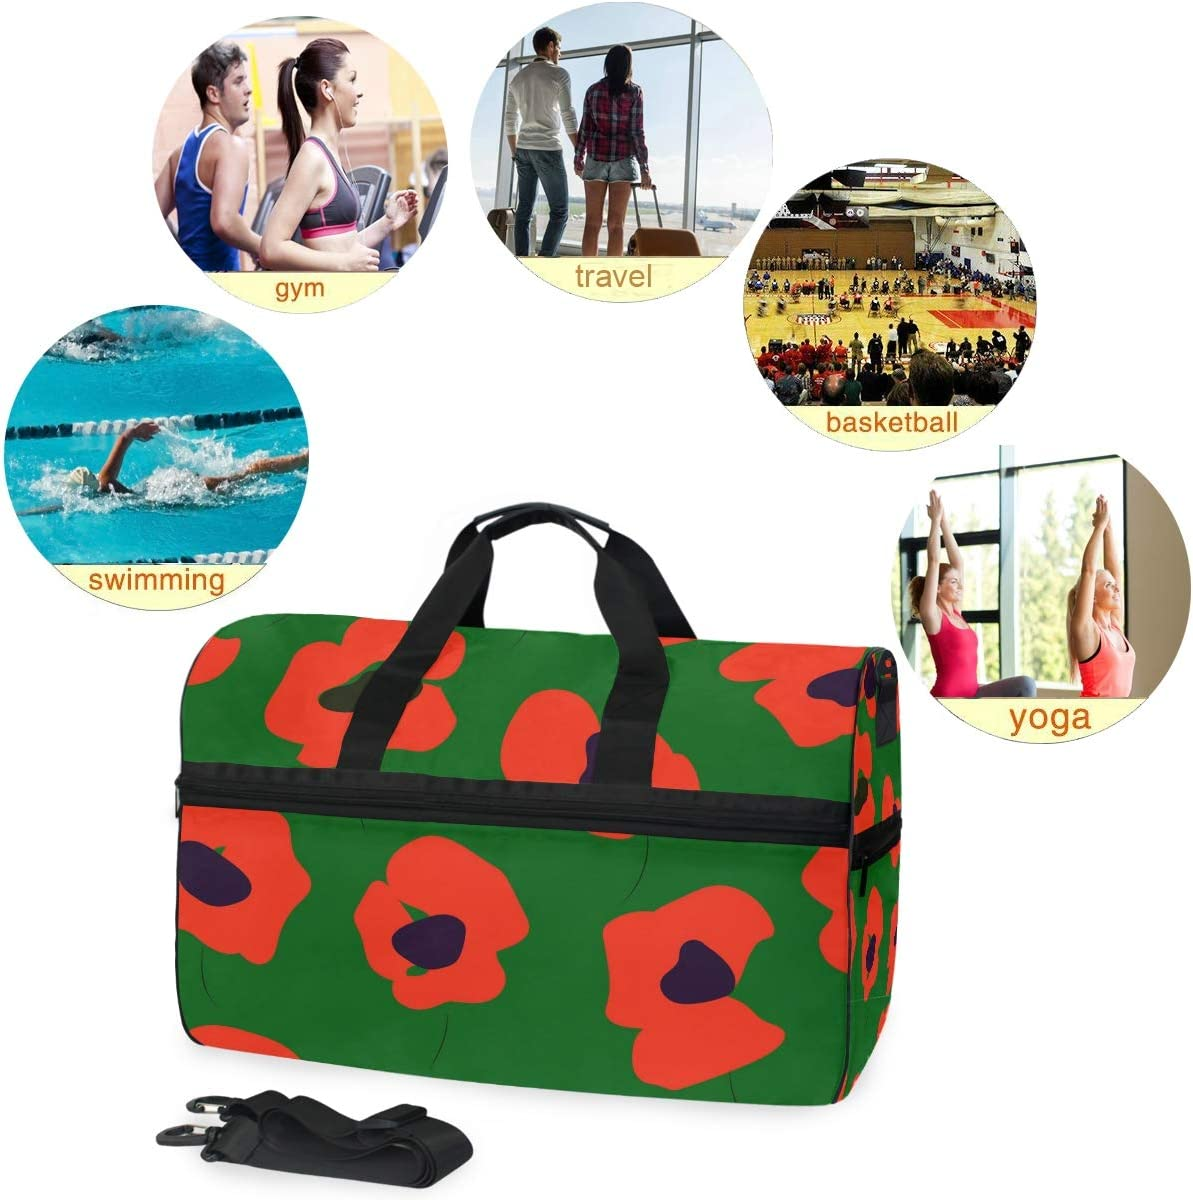 WIHVE Sports Gym Bag with Shoes Compartment Red Poppy Flowers Travel Duffel Bag